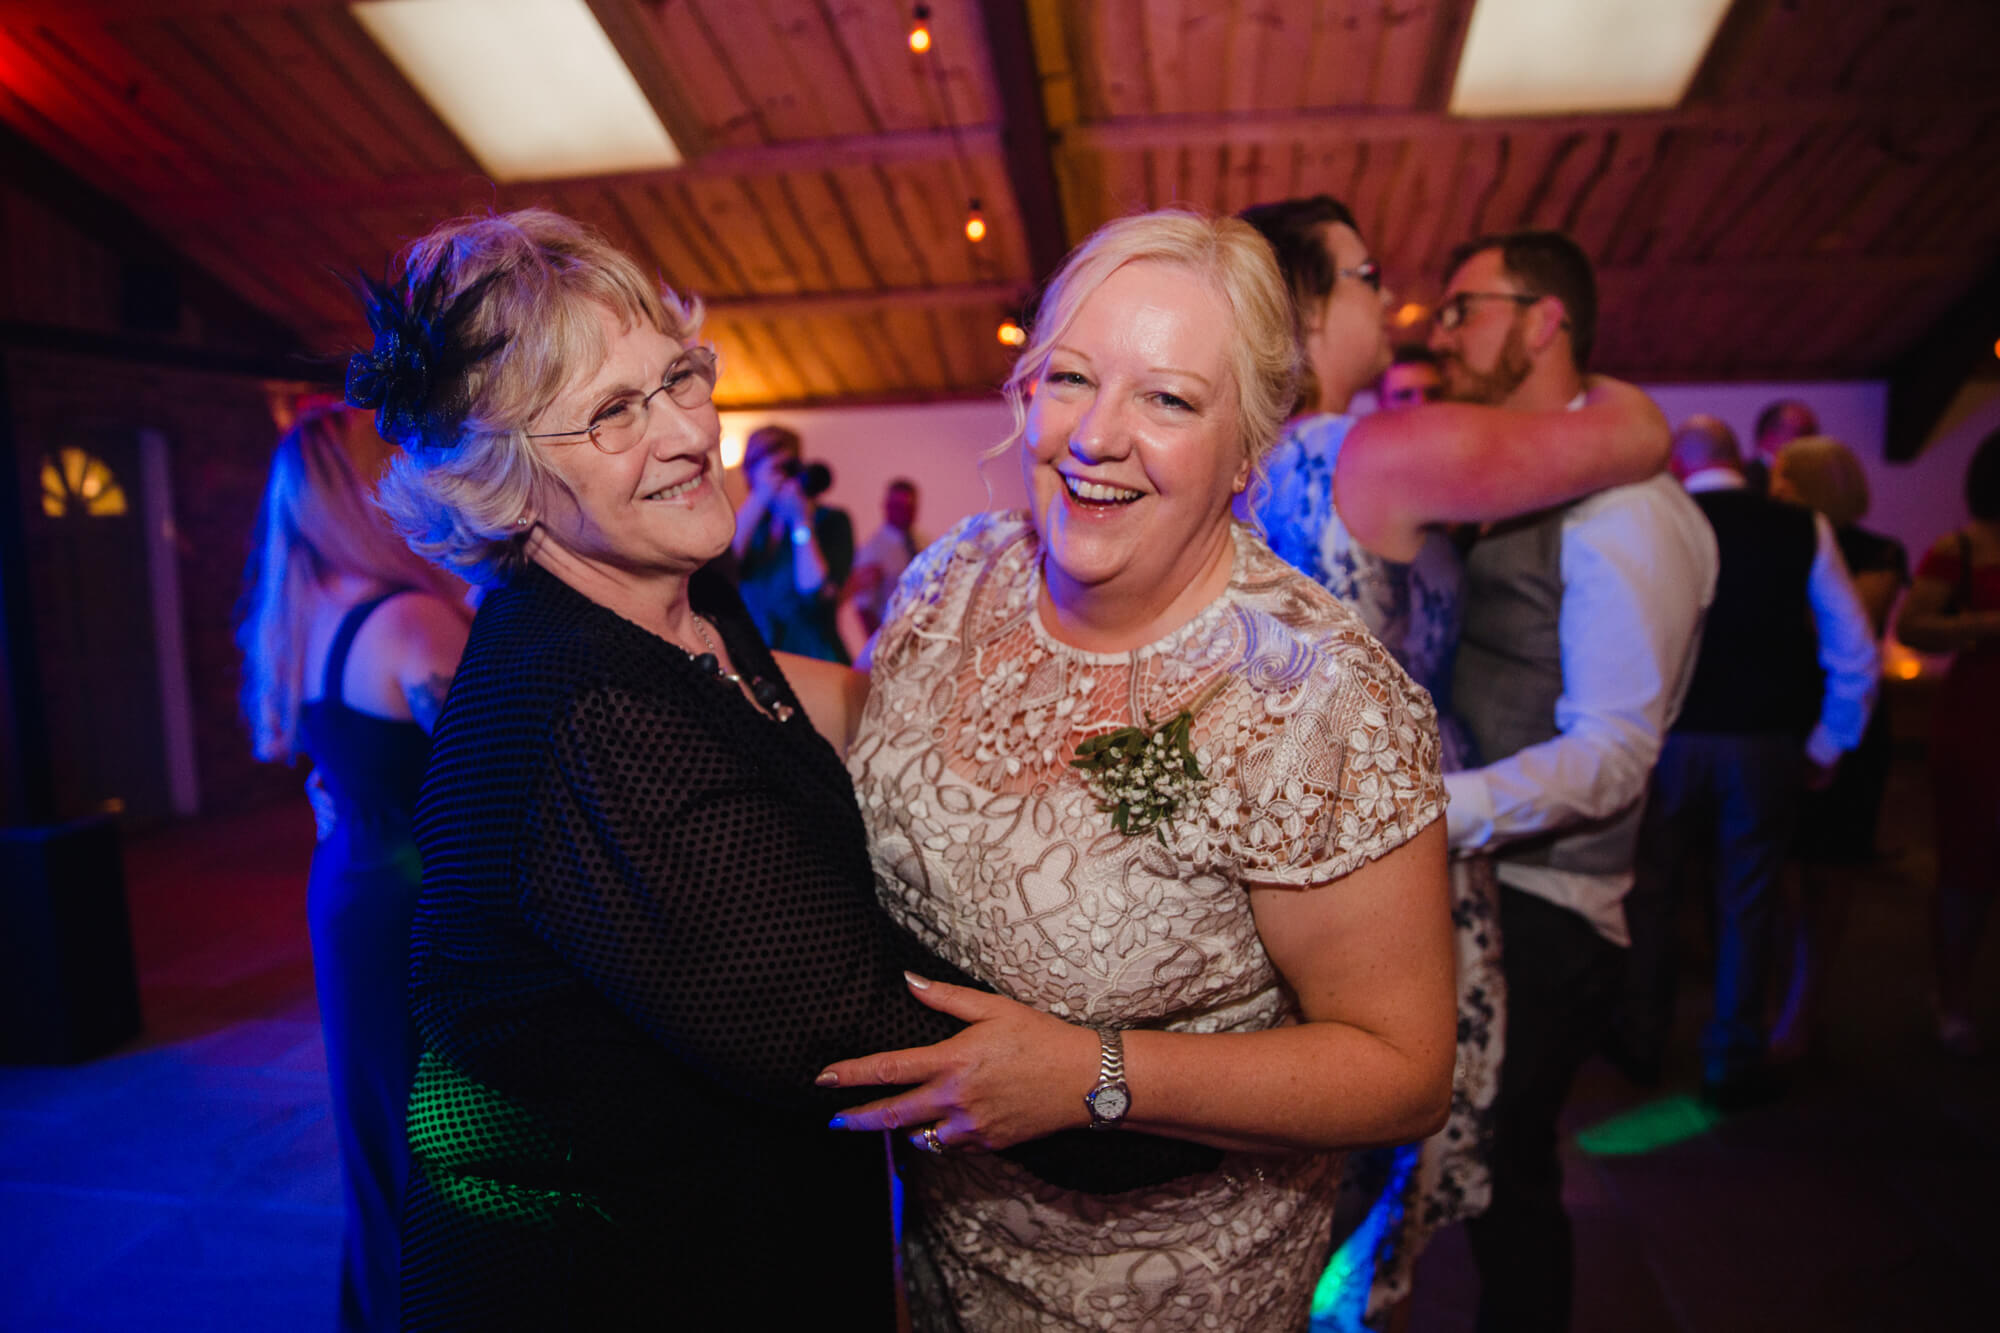 parents on dance floor dancing to music at end of wedding